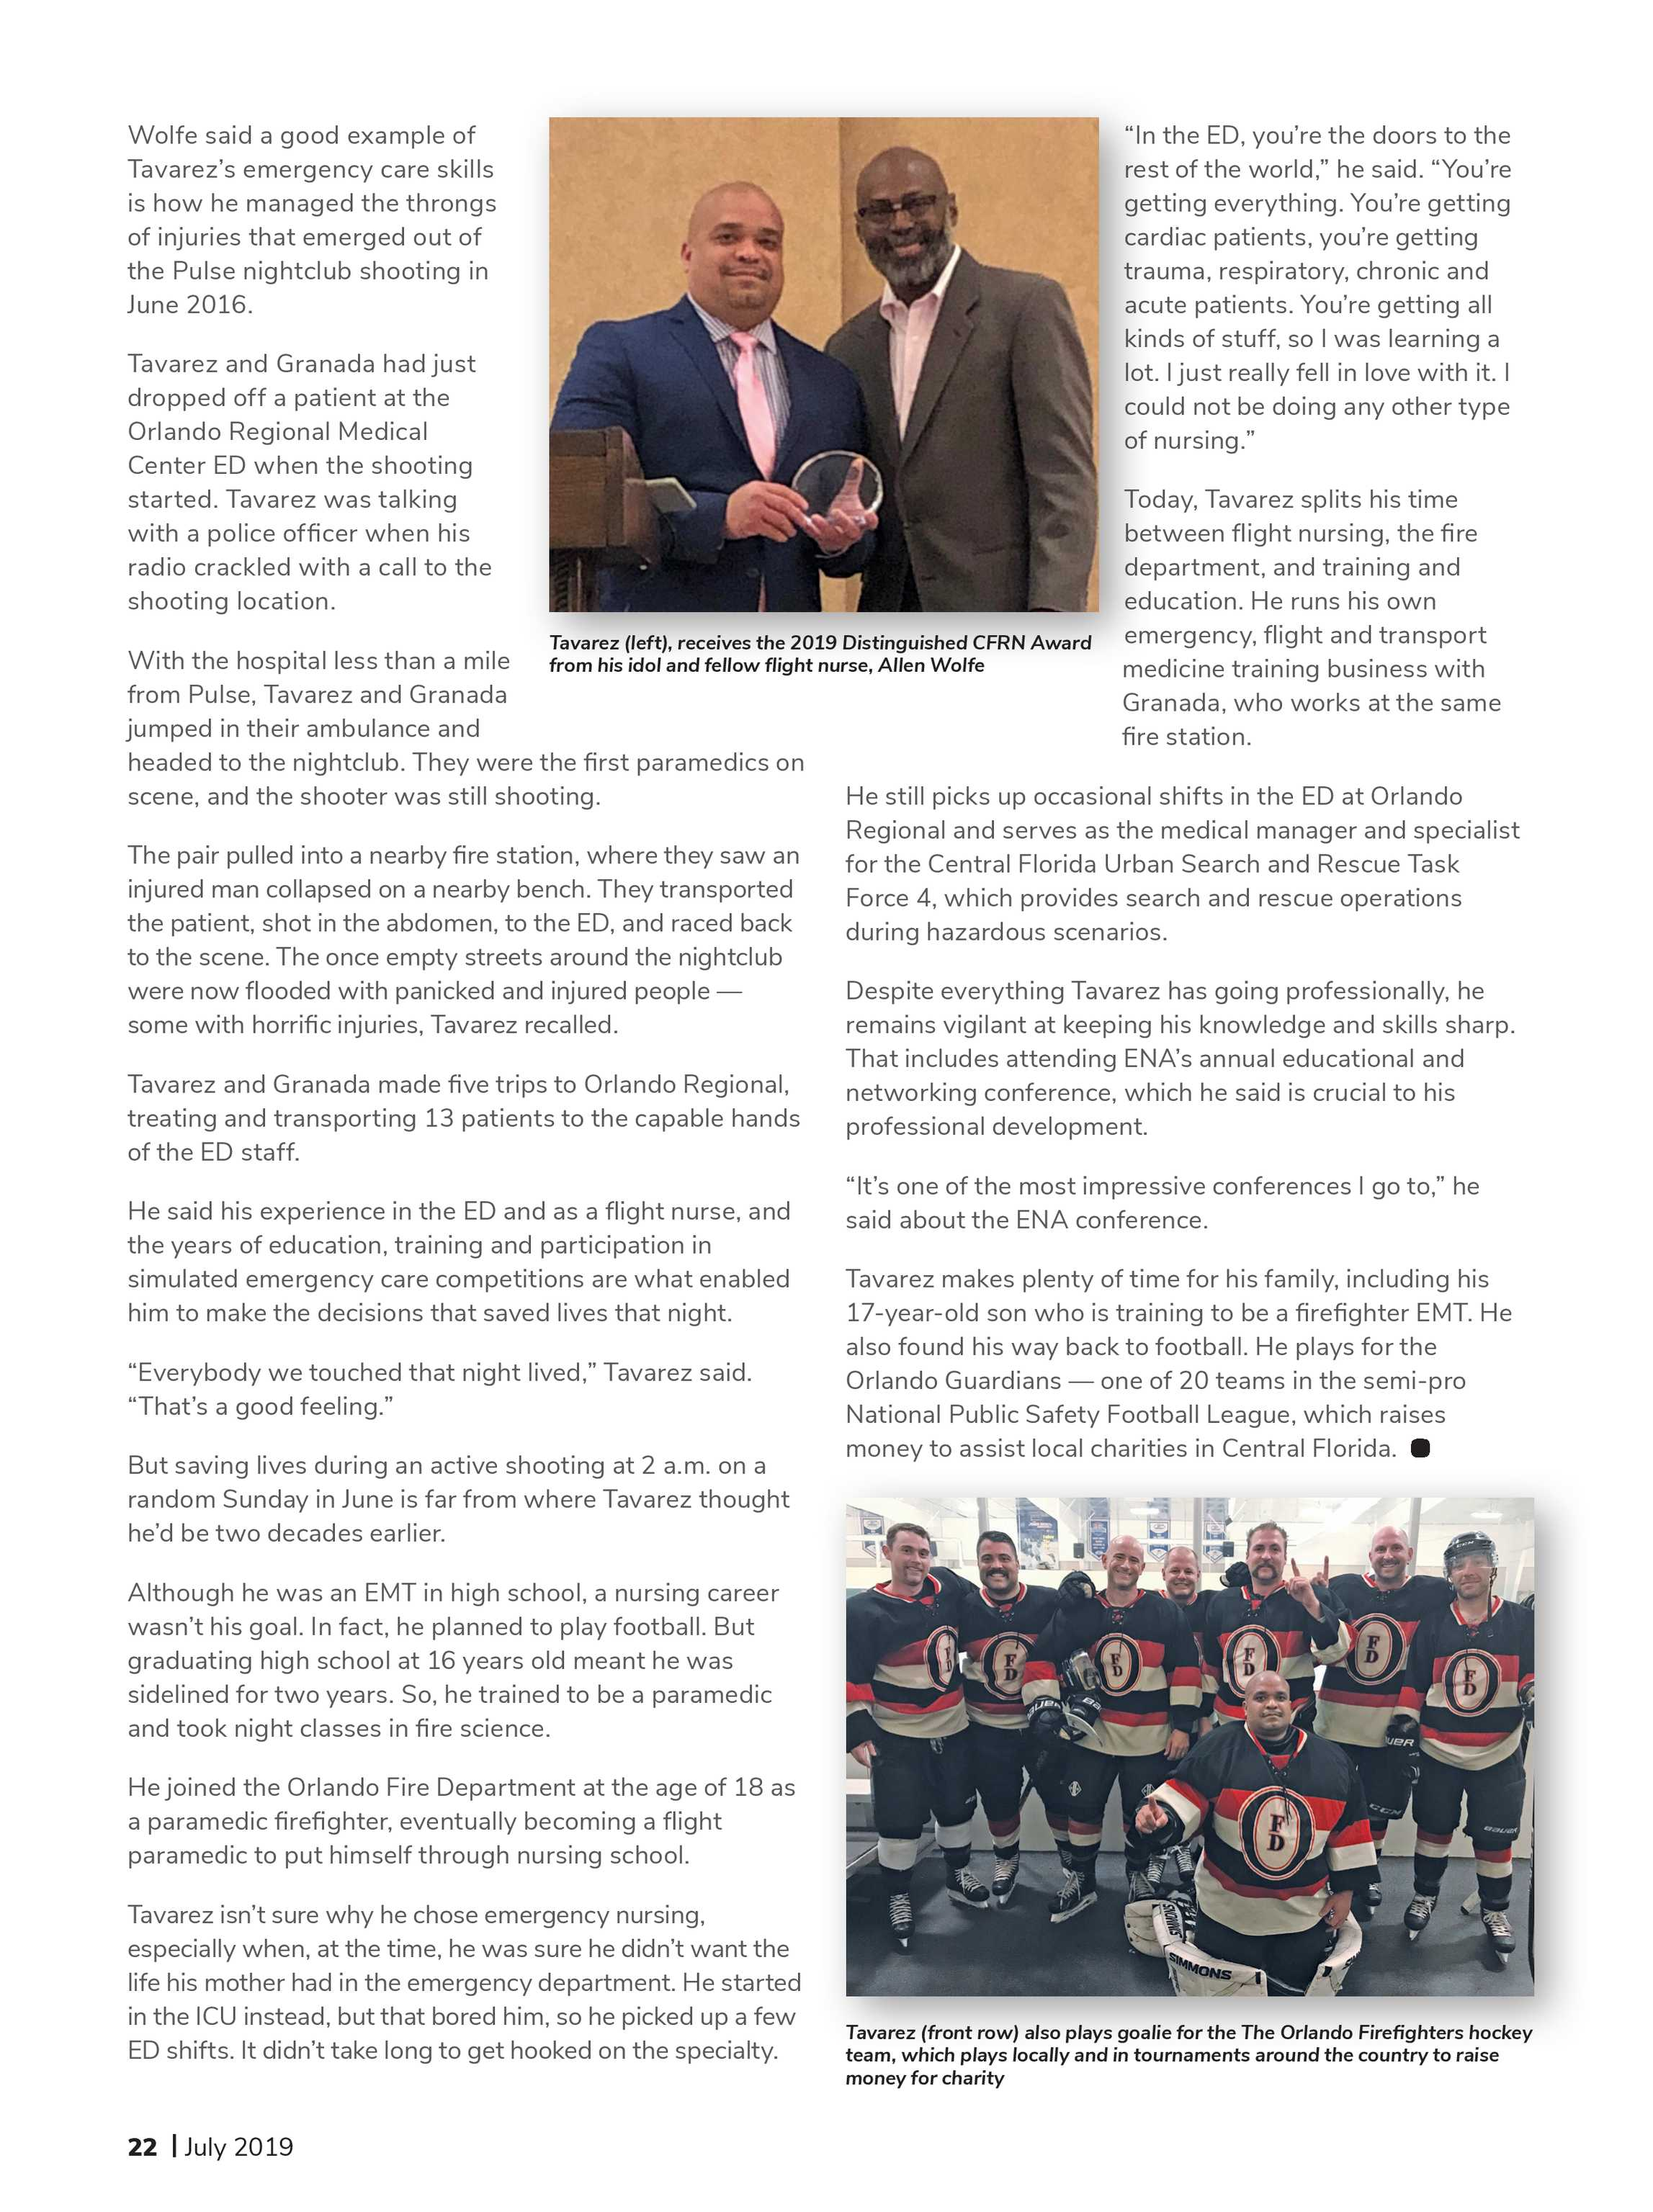 ENA Connection - July 2019 - page 22